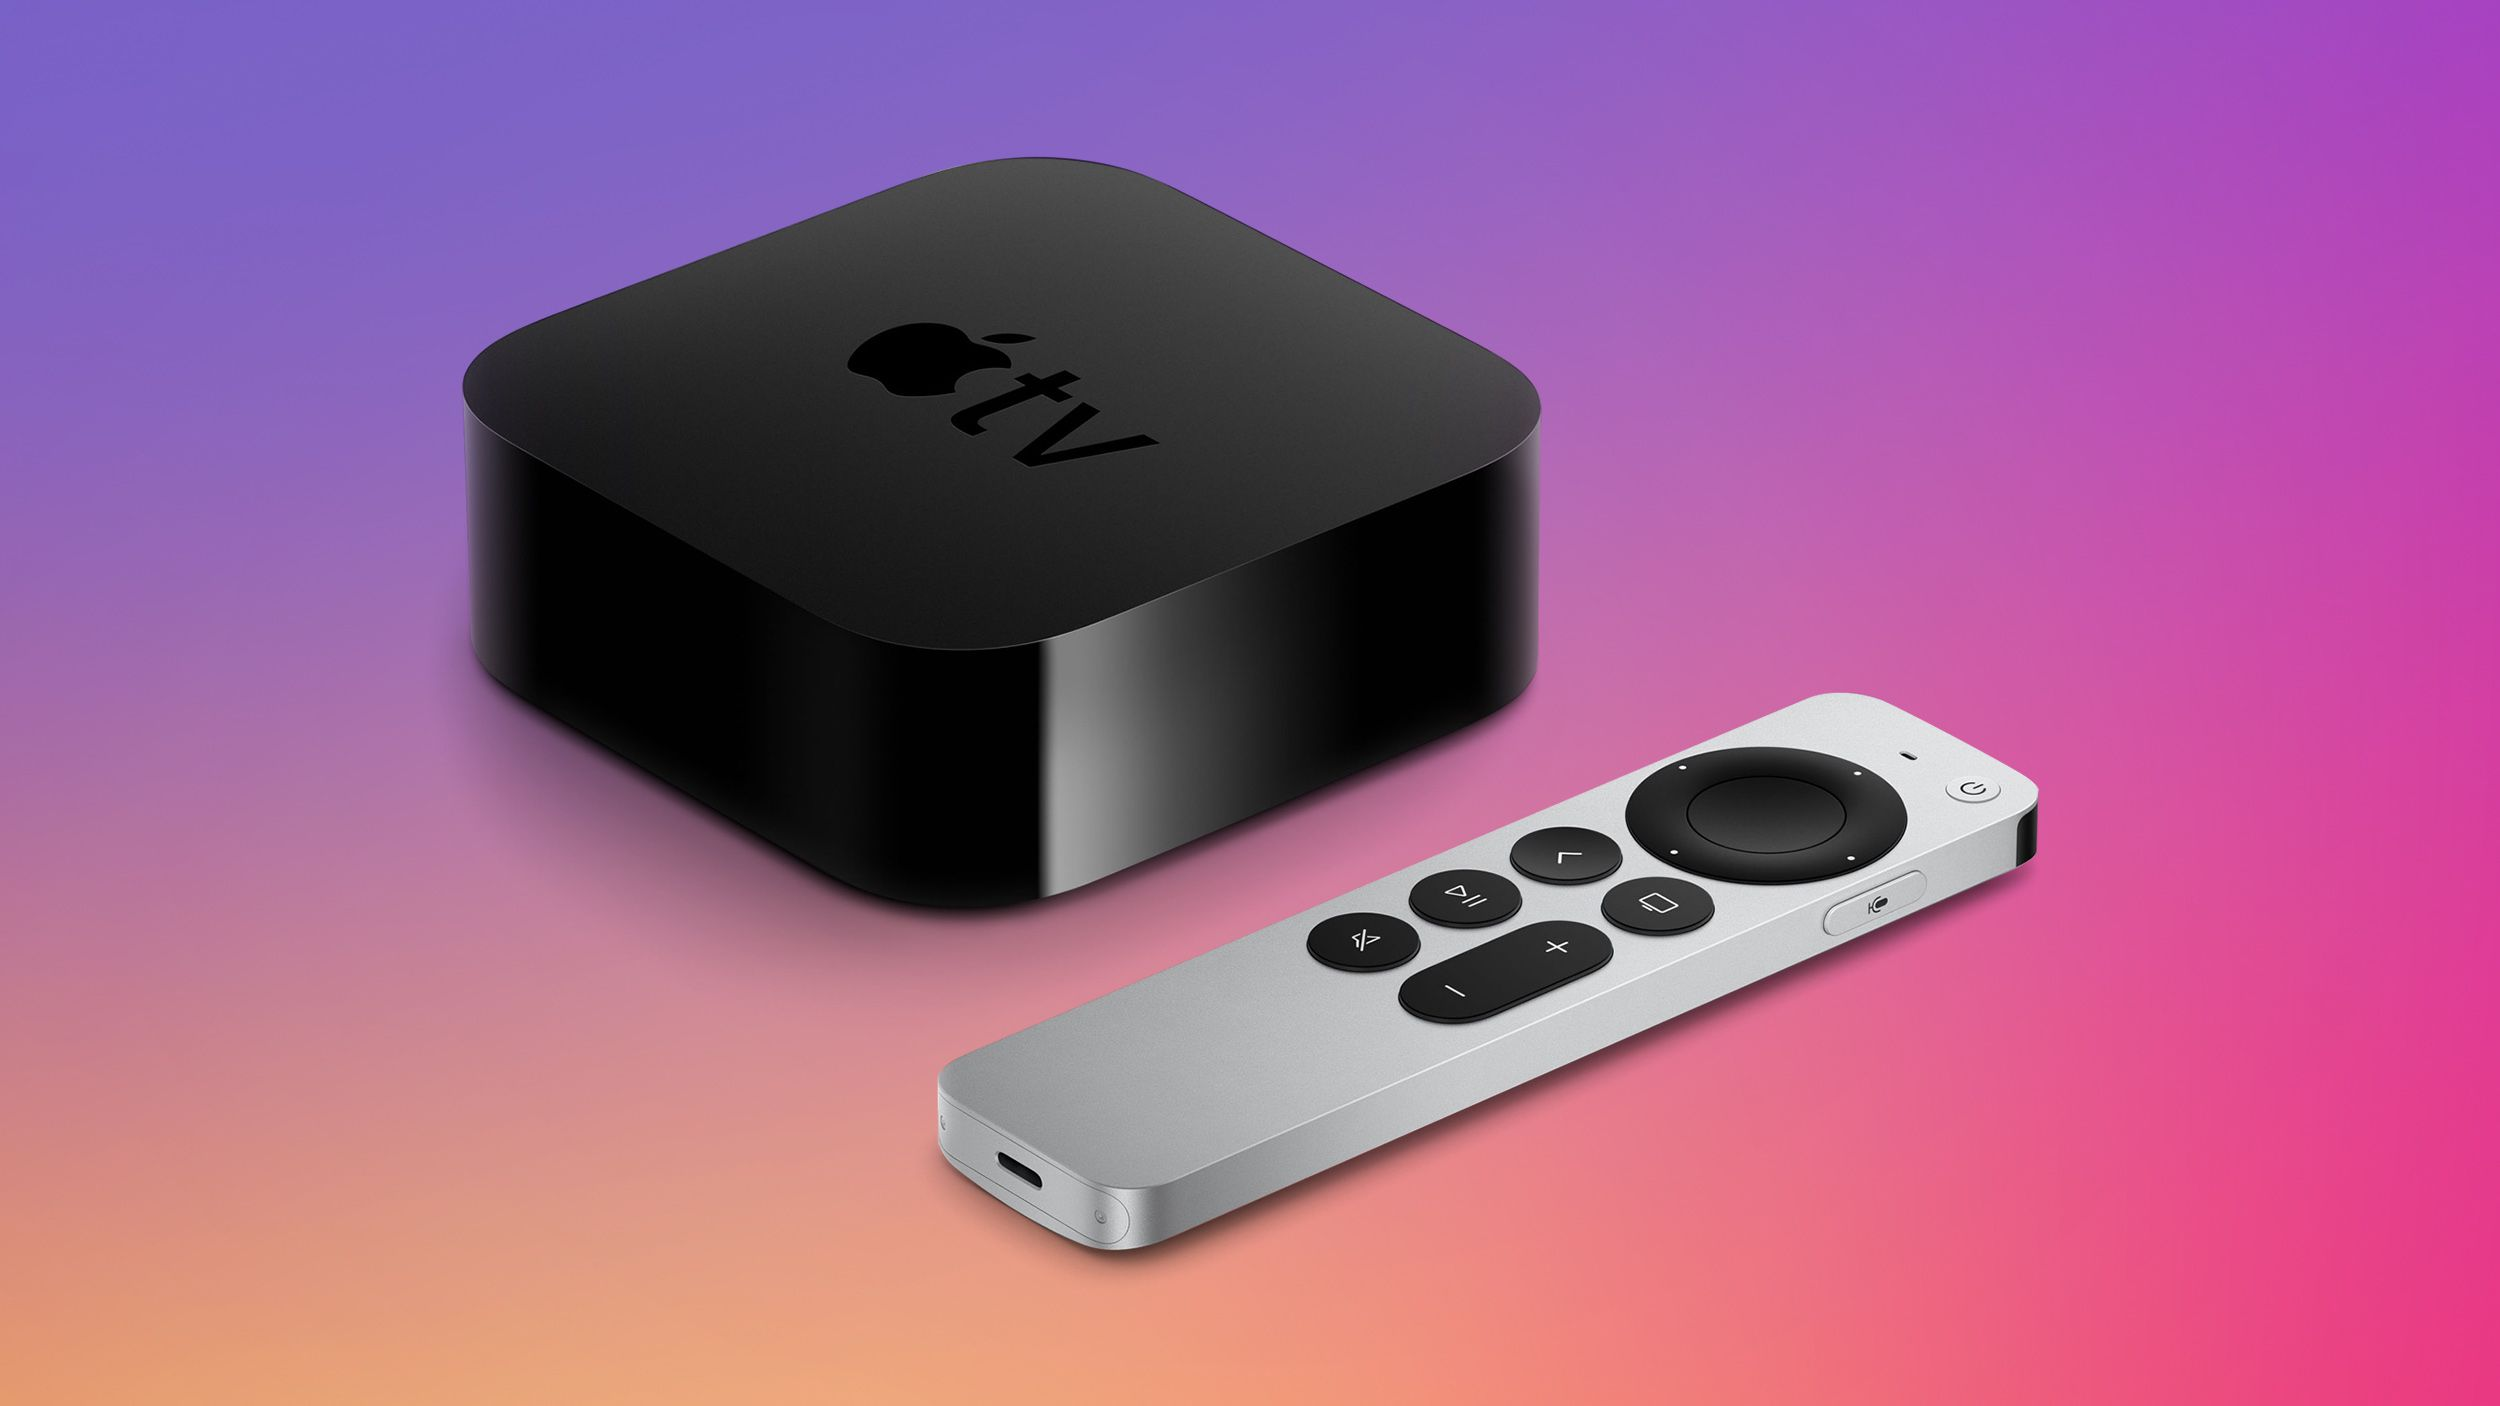 Apple TV 4K Orders Now Preparing to Ship Ahead of May 21 to 27 Delivery Estimates